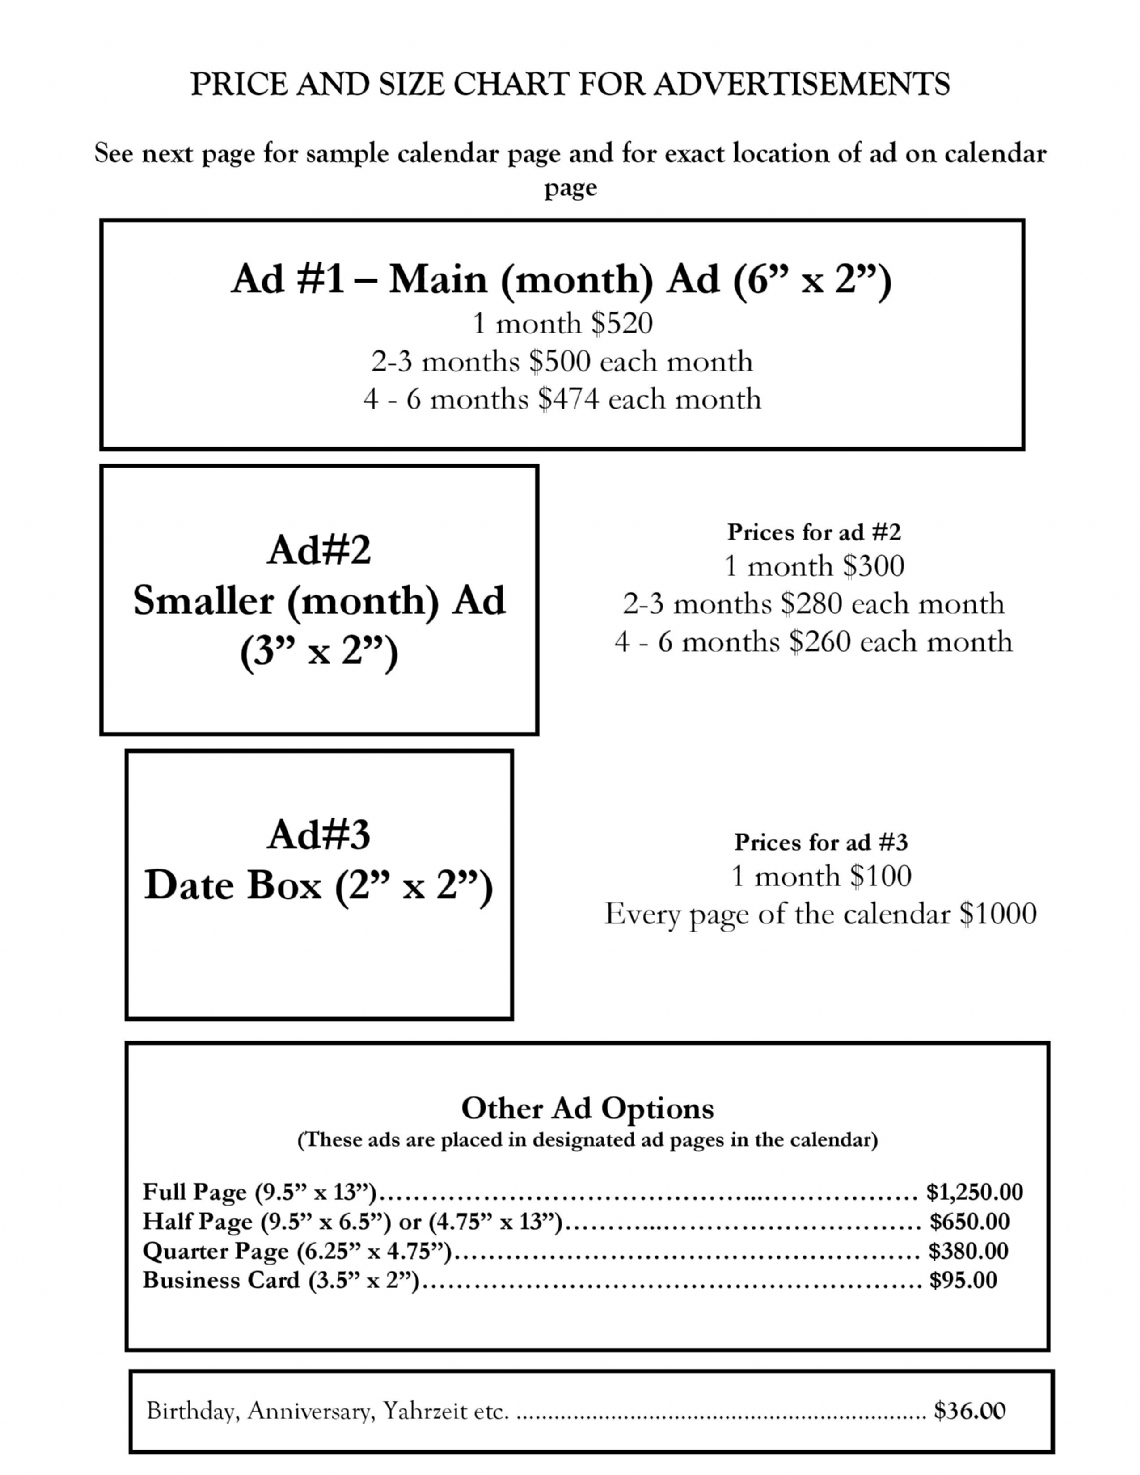 Calendar Price and Layout (1)-page-001.jpg